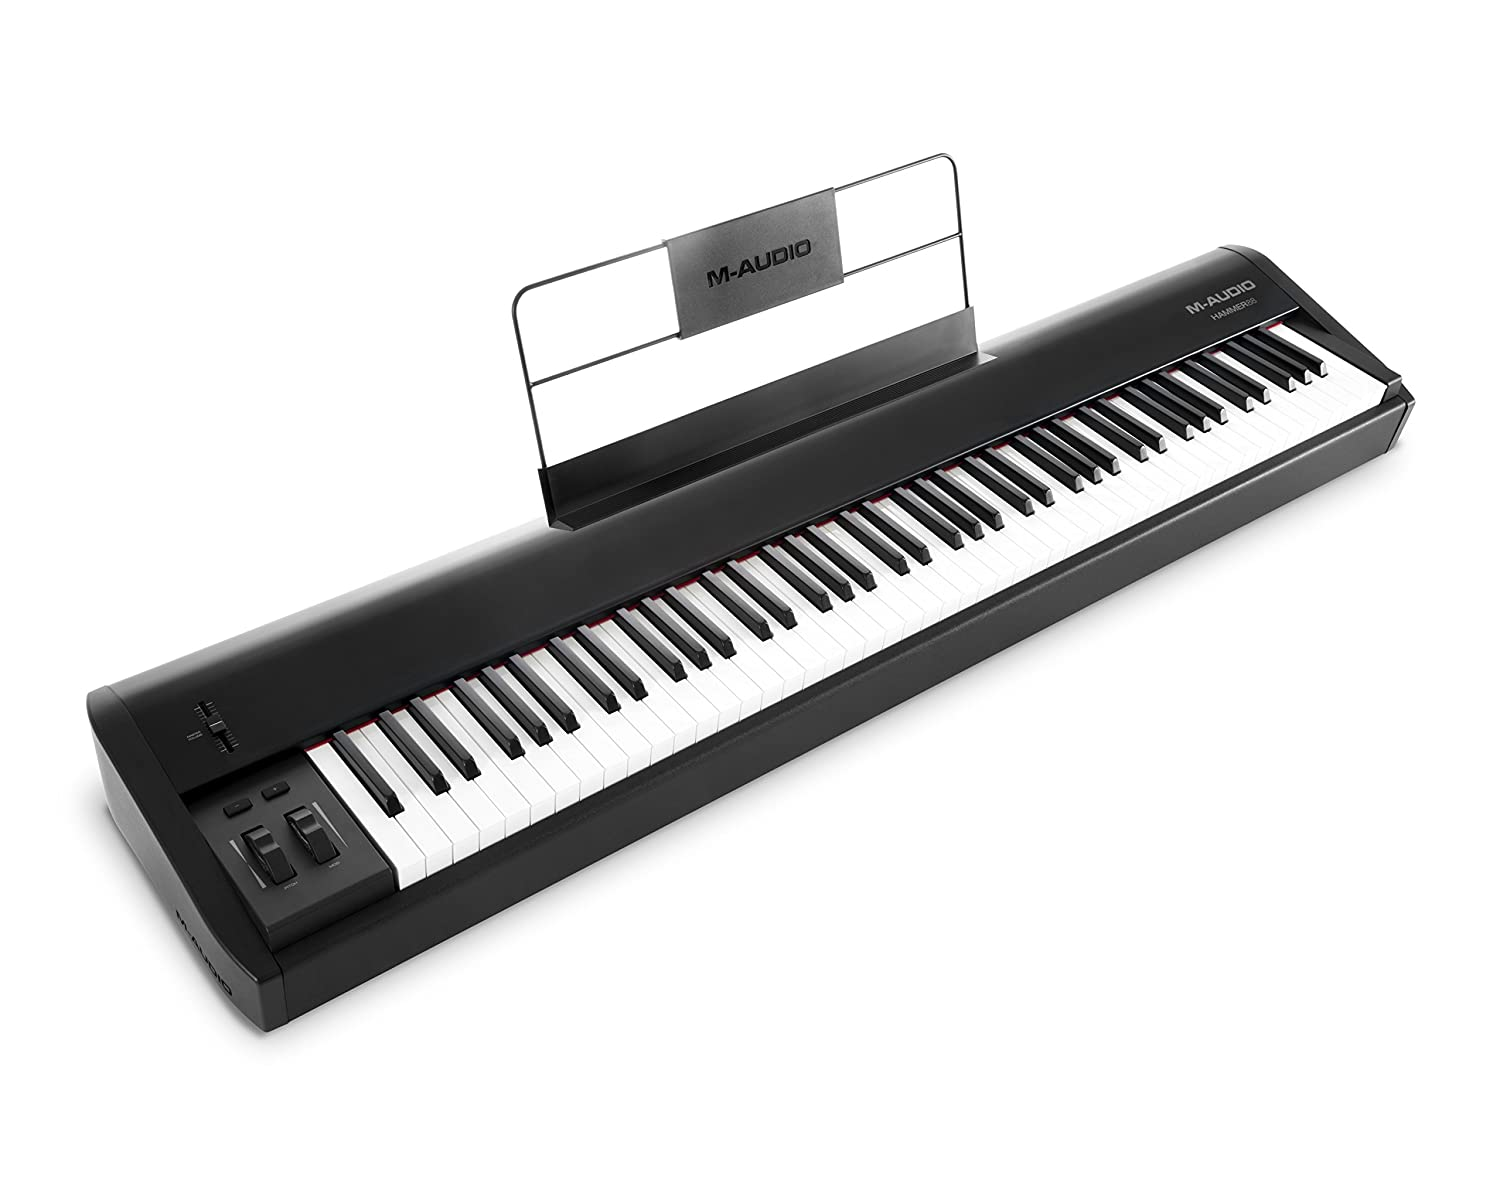 Top 8 Best 88 Key Digital Pianos You Should Check Out 5